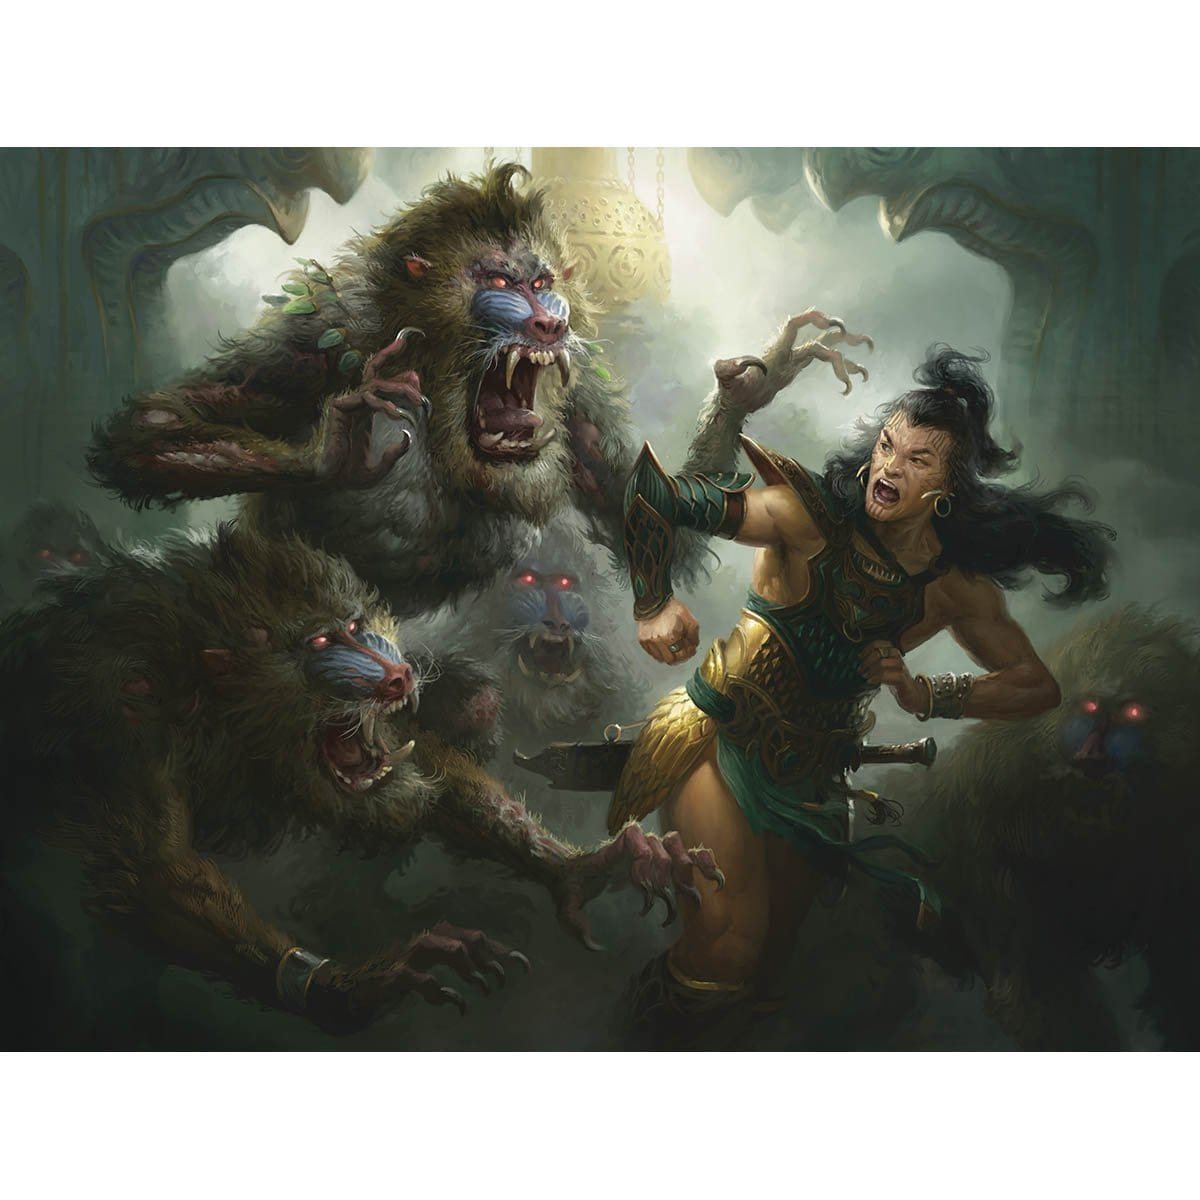 Mob Rule Print - Print - Original Magic Art - Accessories for Magic the Gathering and other card games